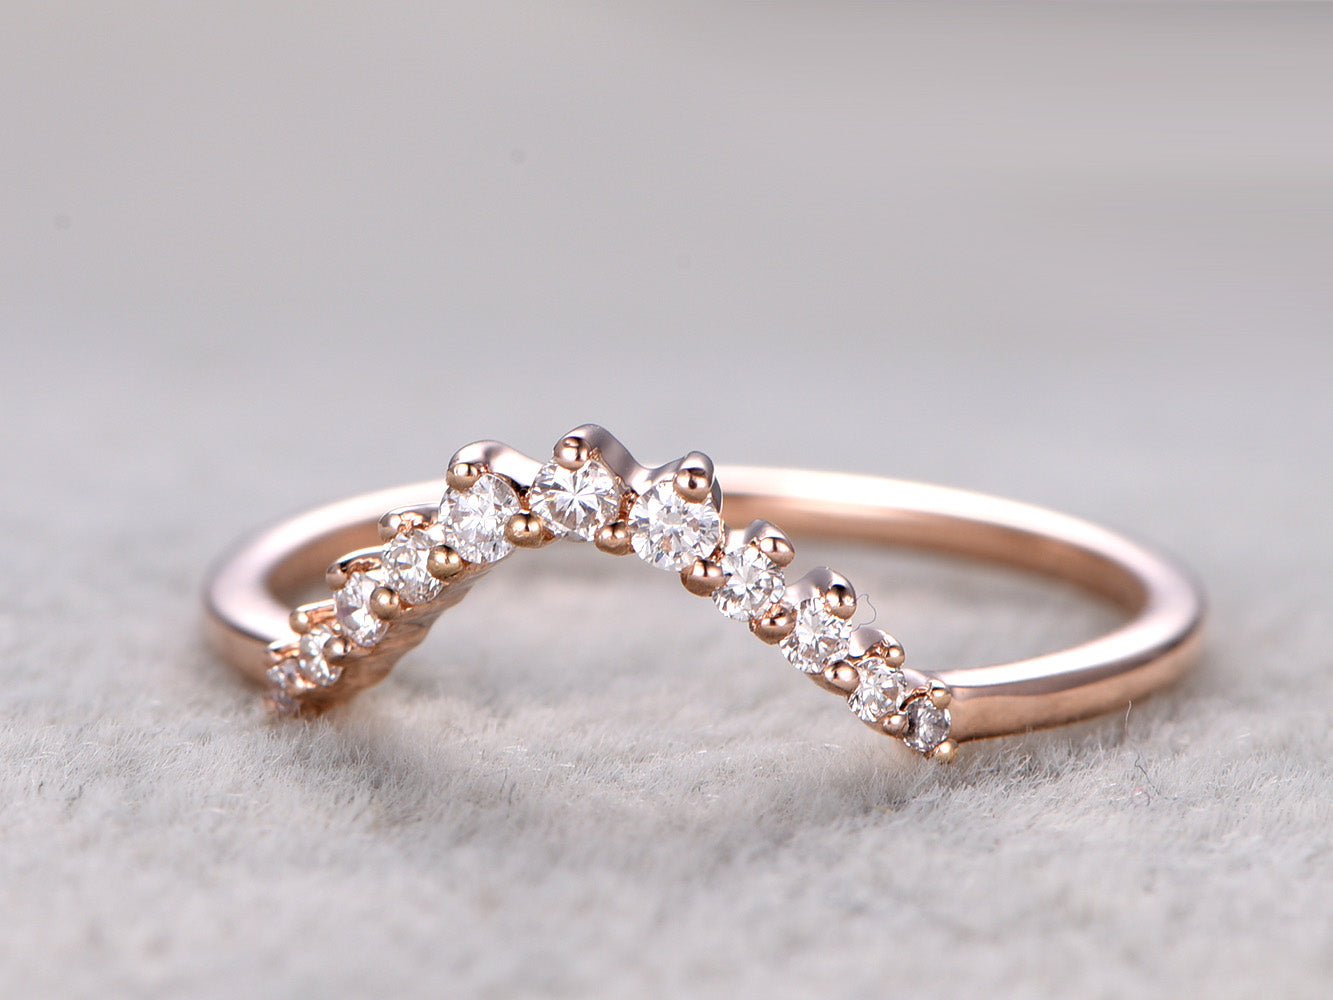 Diamond wedding band 14k rose gold curved shape diamond matching band anniversary ring custom jewelry